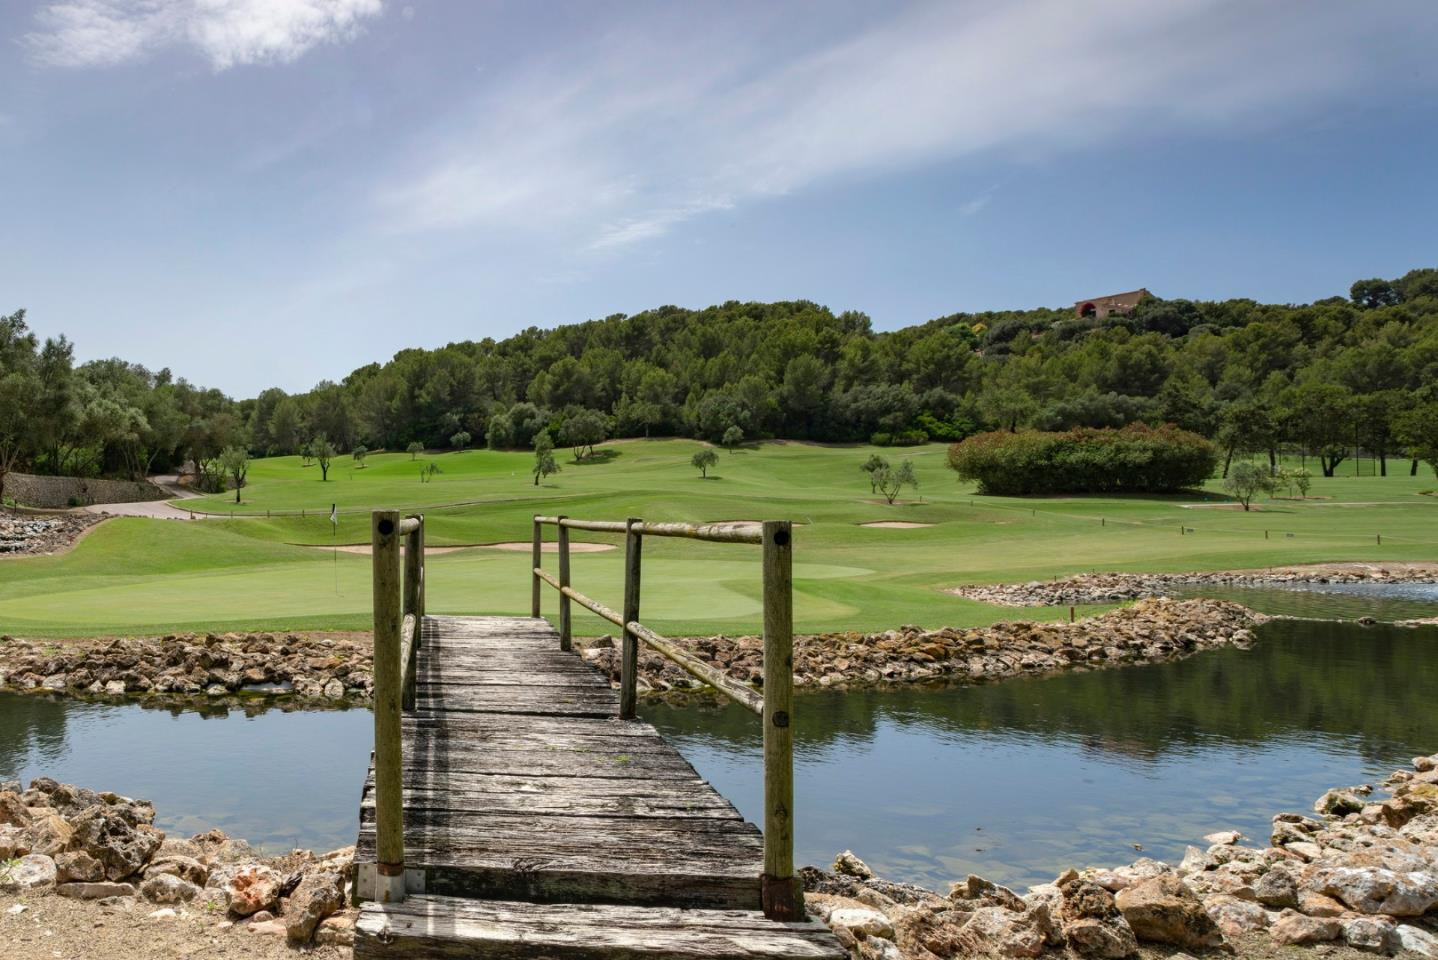 Arabella Golf (5* Castillo Hotel Son Vida) - 7 Nights & 5 Rounds